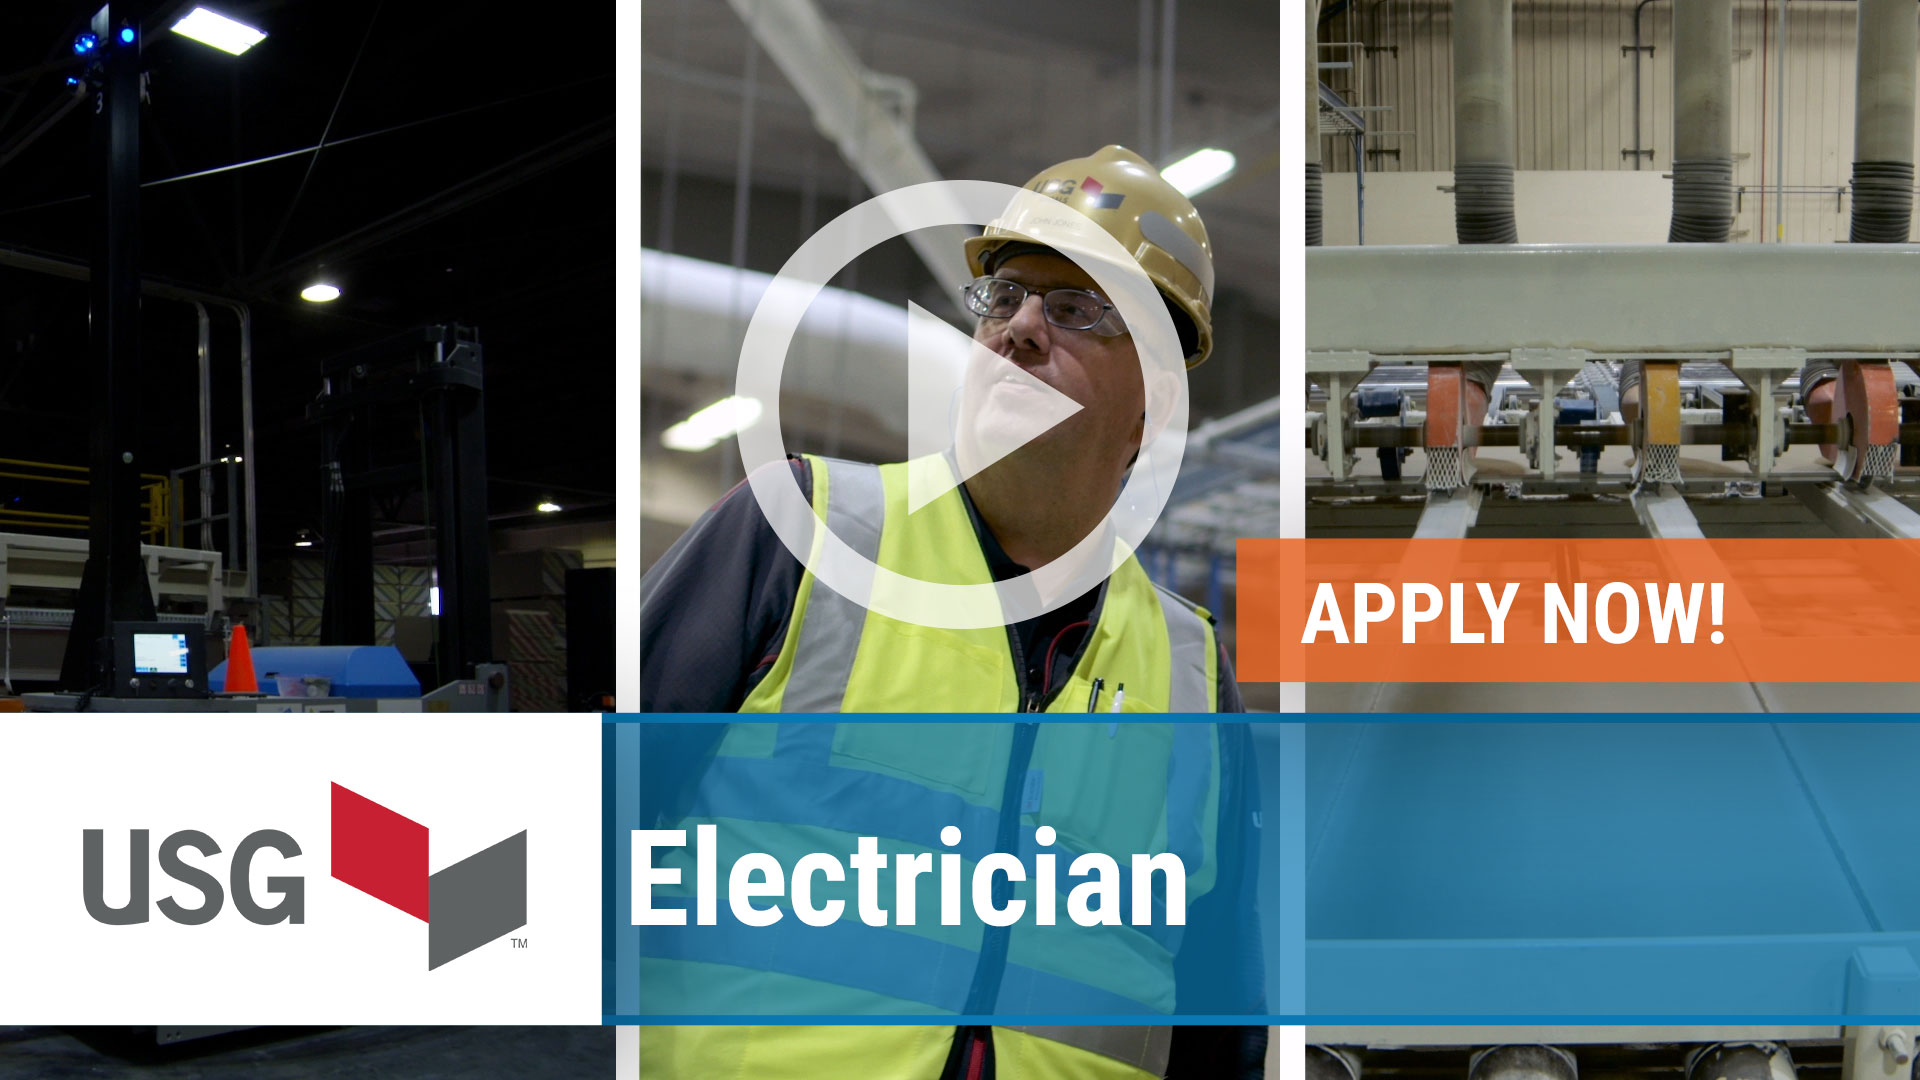 Watch our careers video for available job opening Electrician in Westlake, Ohio, USA